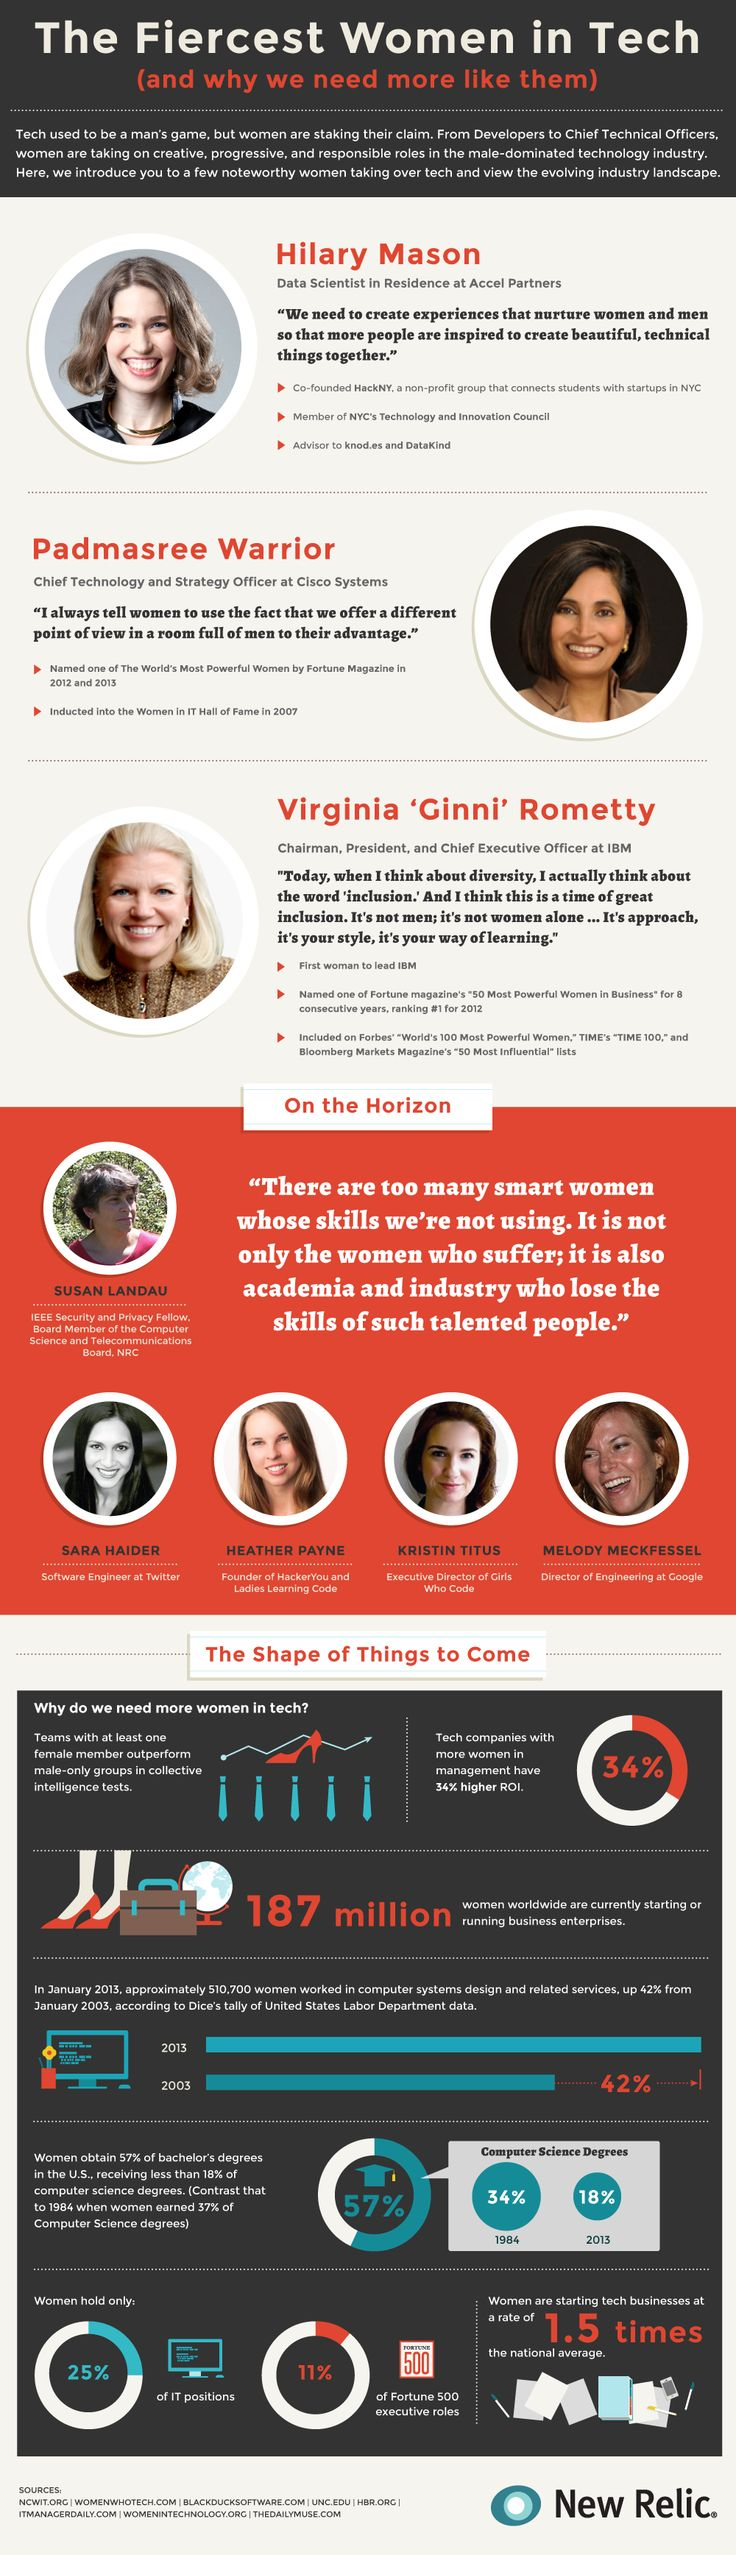 The Fiercest Women in Tech (and why we need more like them). Did you know that teams with at least one female member outperform male-only groups in collective intelligence tests?